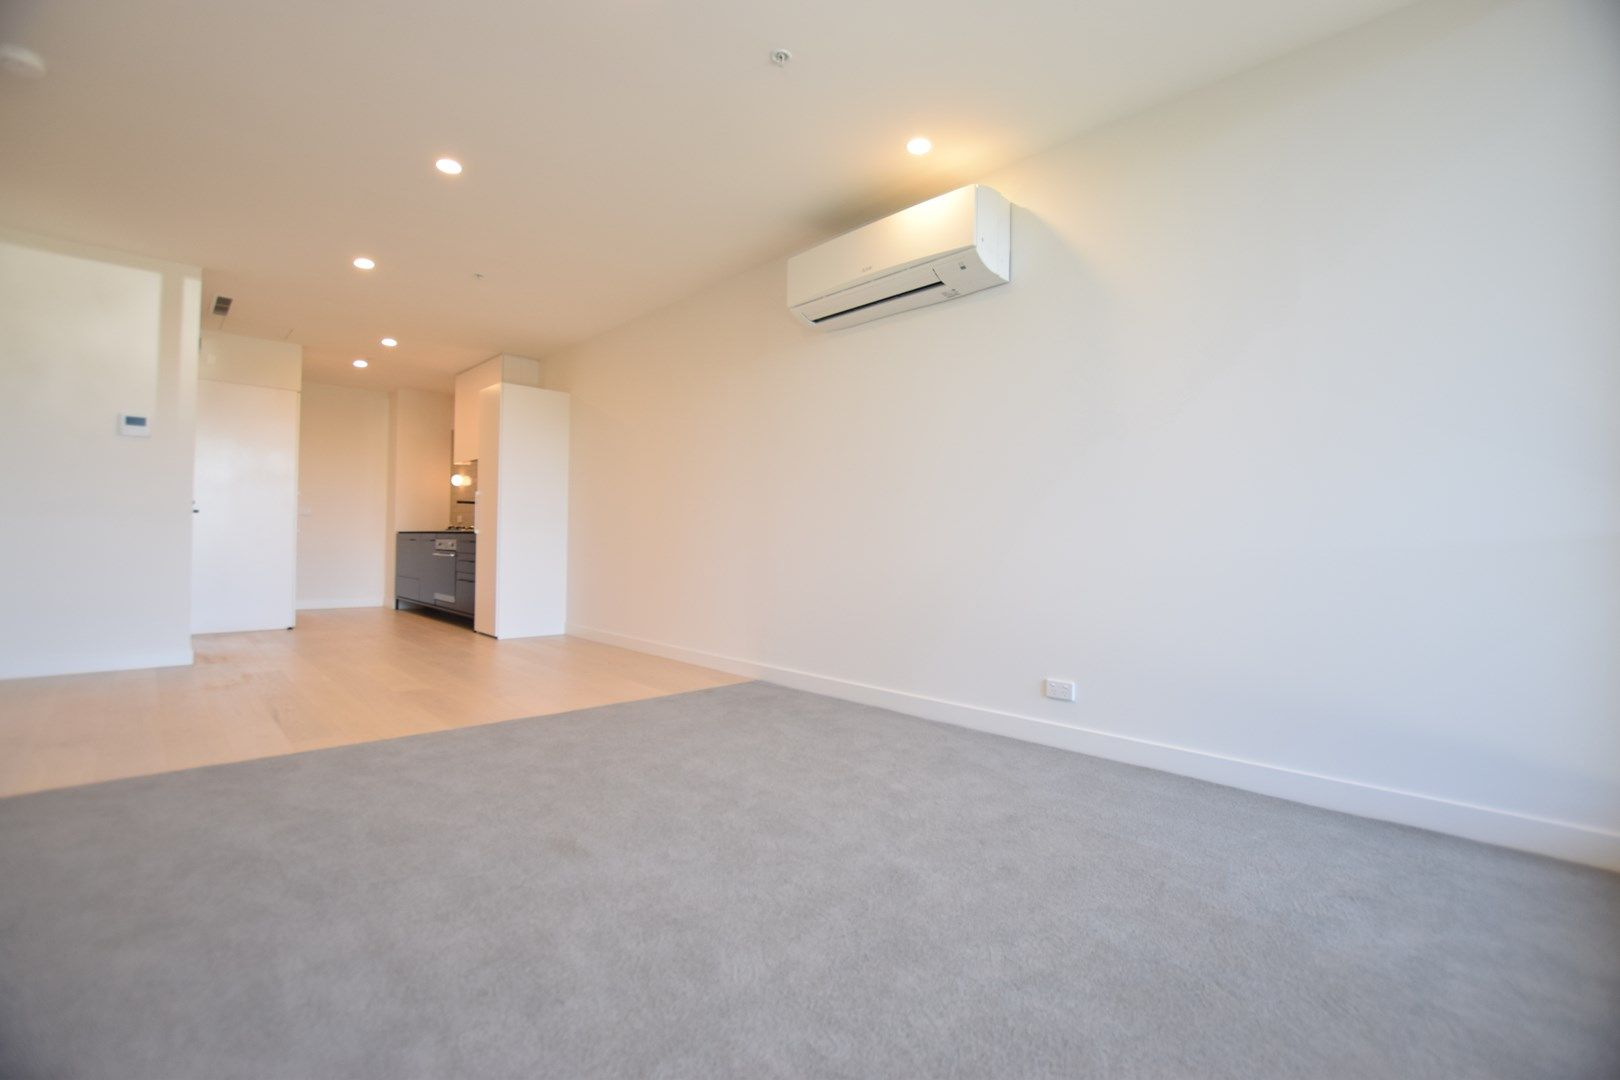 107/165 Gladstone Street, South Melbourne VIC 3205, Image 0